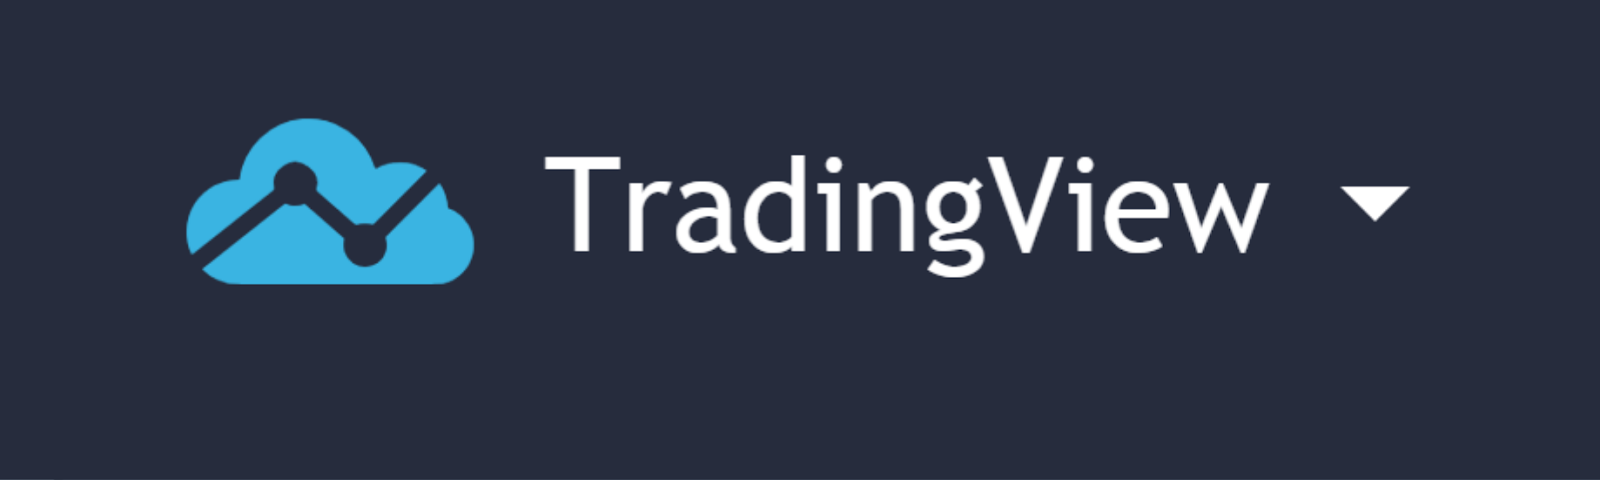 TradingView Profile